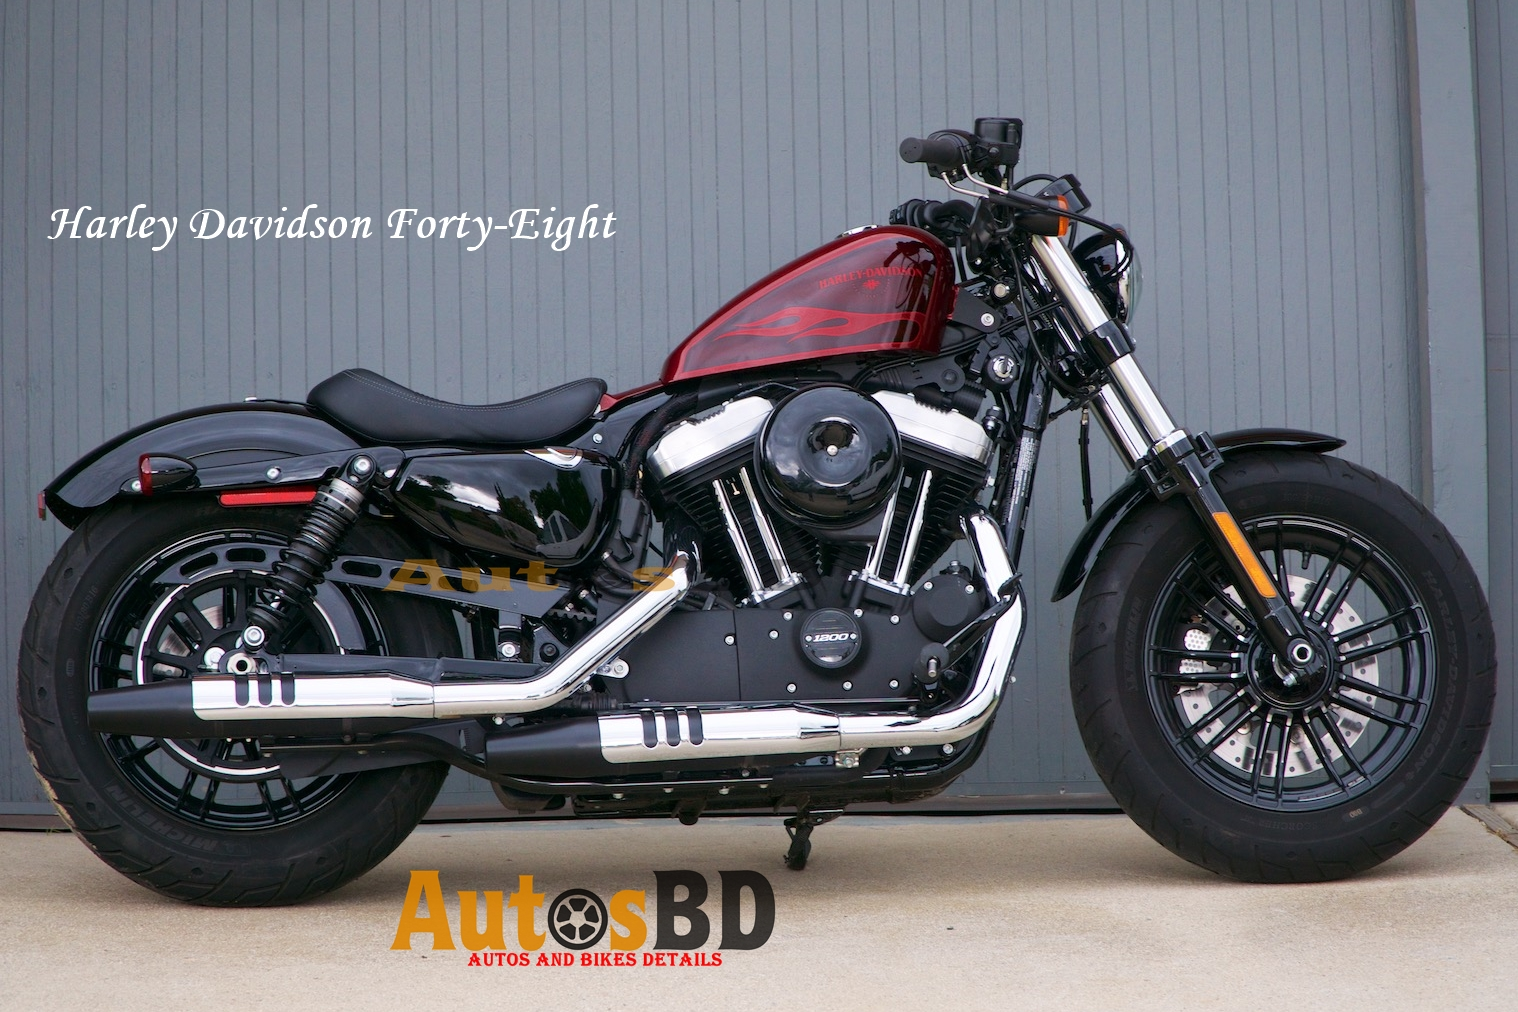 Harley Davidson Forty-Eight Motorcycle Price in India